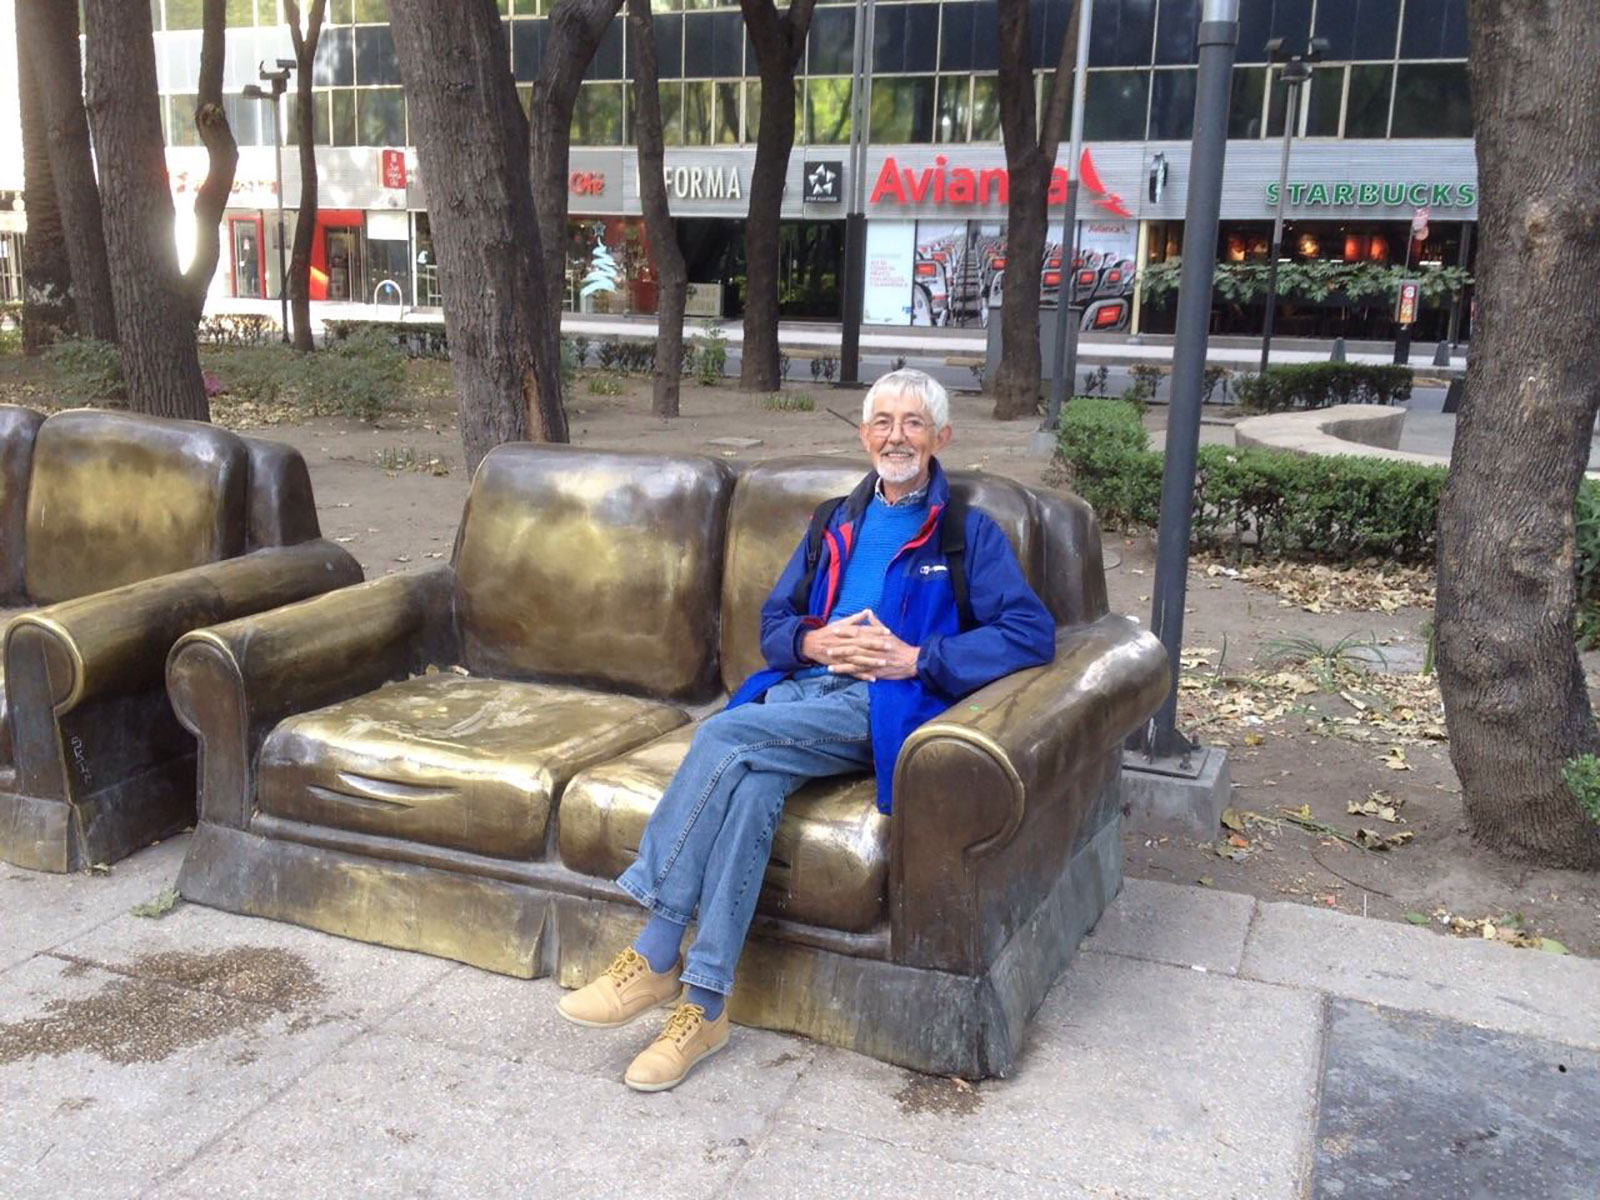 Quirky and funky benches of Mexico City.